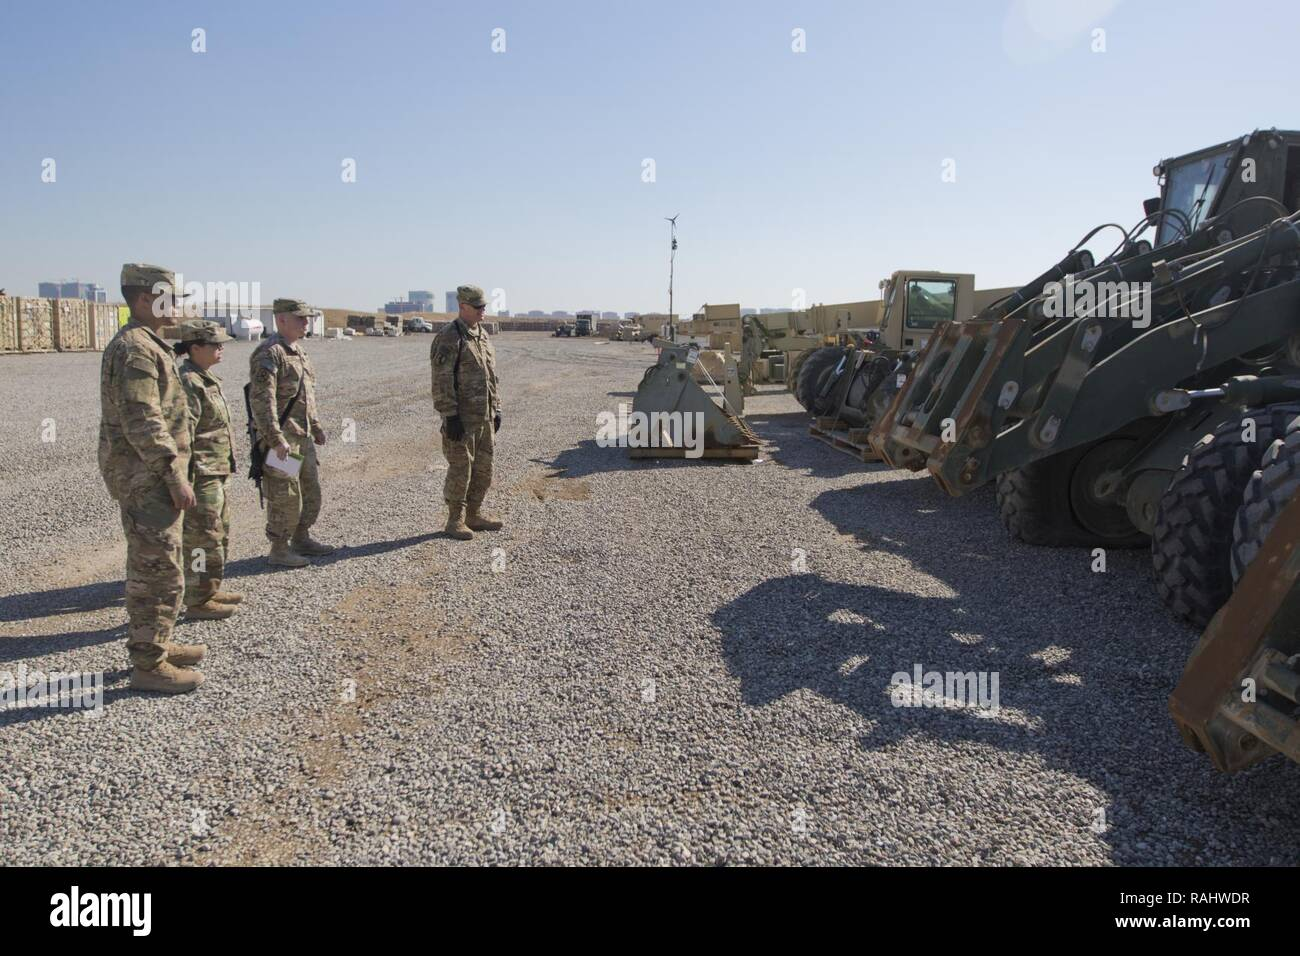 Brig. Gen. Robert D. Harter, deputy commanding general of the 1st Sustainment Command (Theater) / commanding general of the 316th Sustainment Command (Expeditionary), inspects the Movement Control Team's staging yard at Erbil, Iraq, on February 3, 2017. - Stock Image